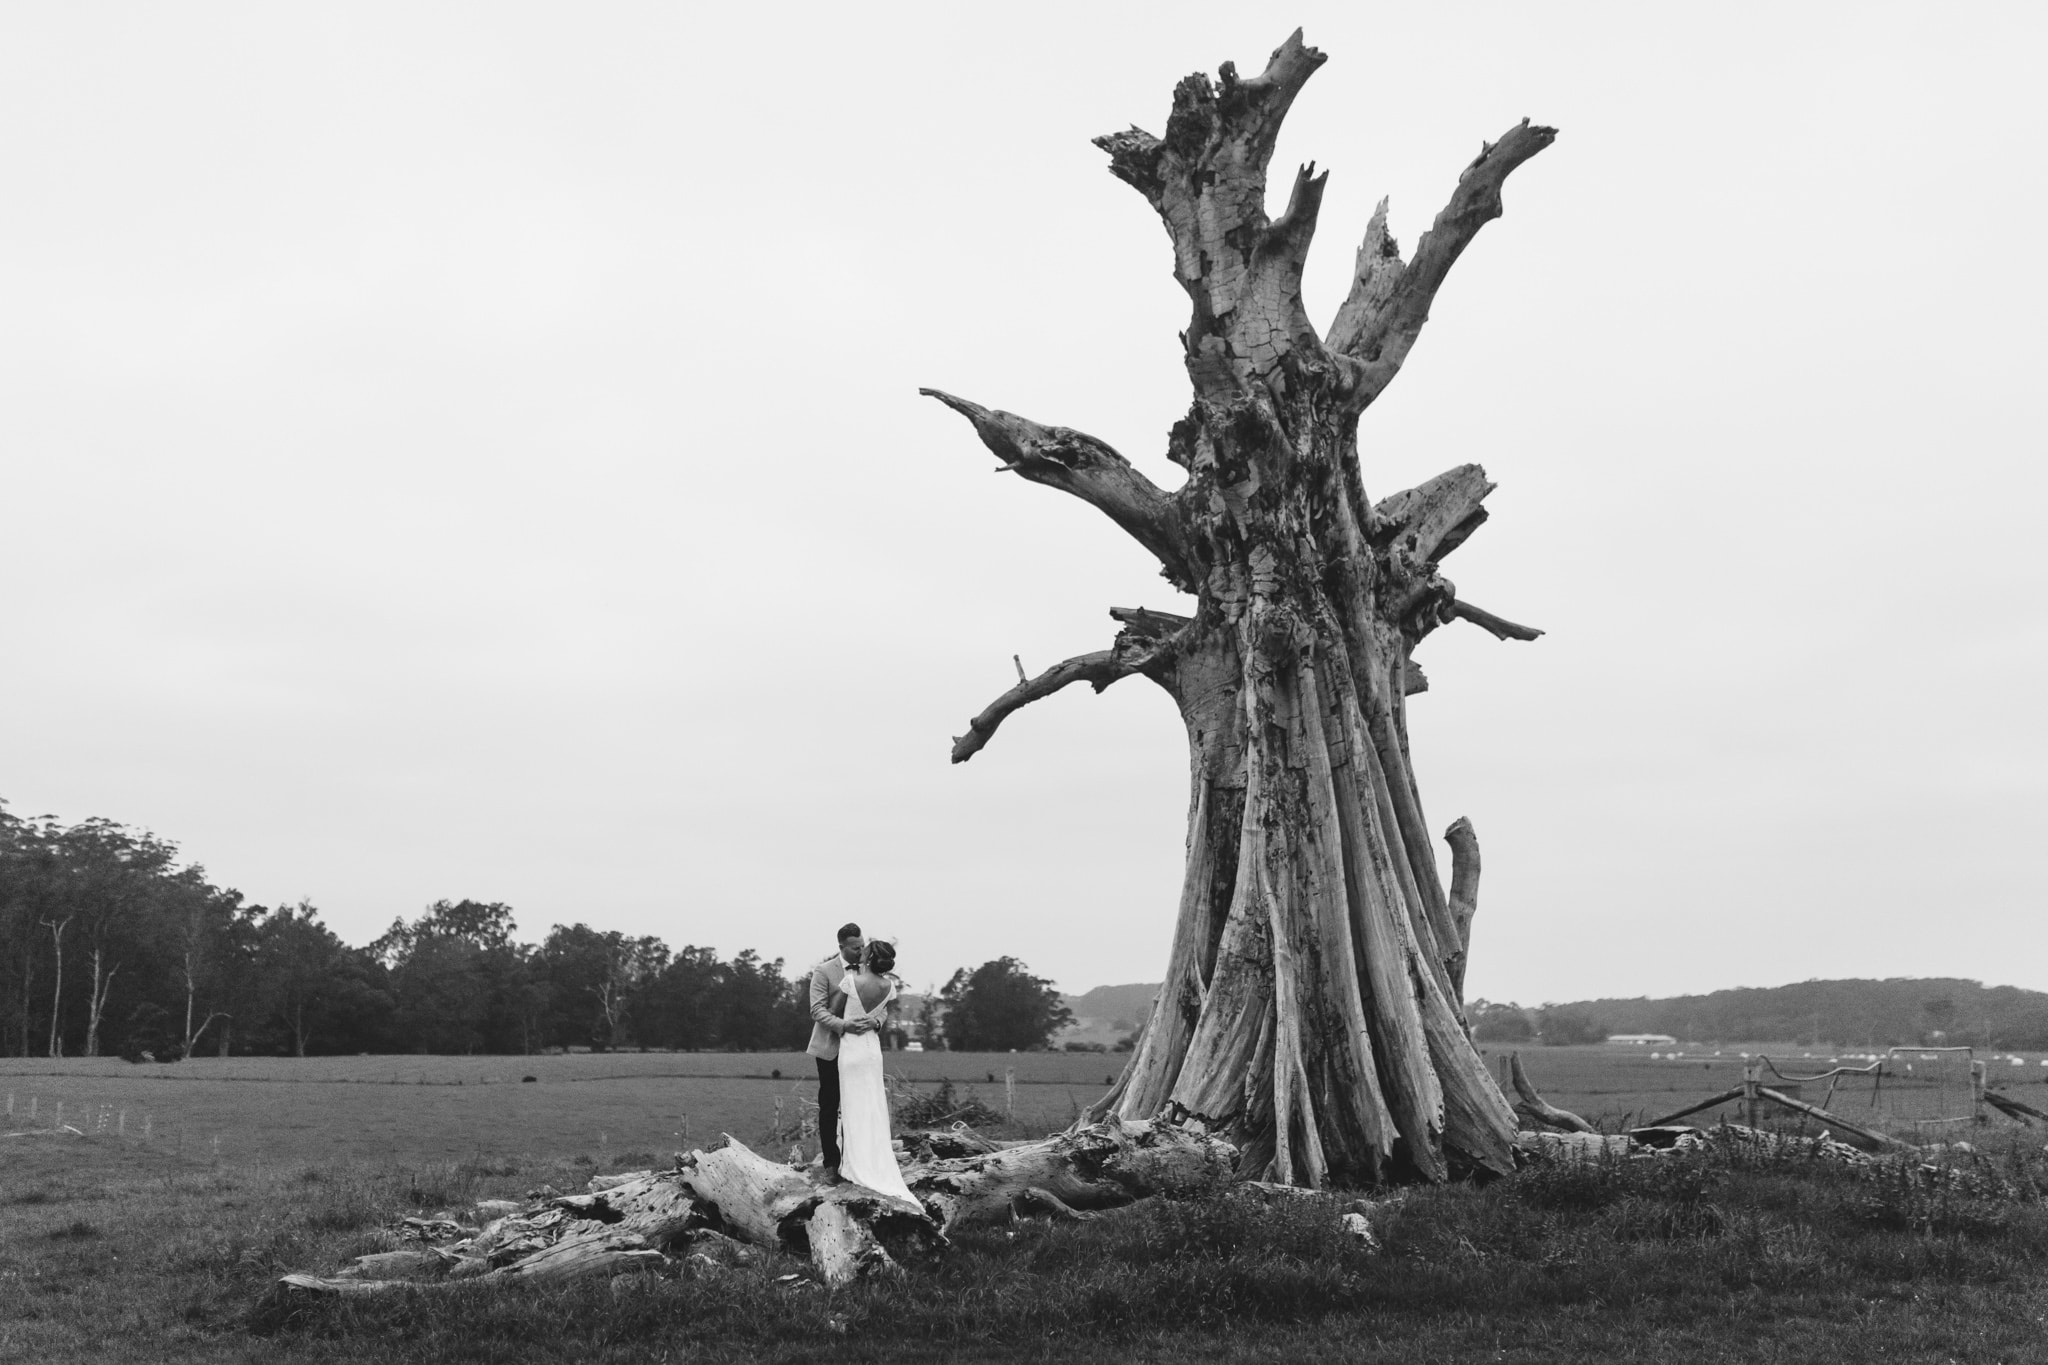 Bride and Groom under the Willow Tree at Willow Farm in Berry. A black and white photo at one of the nicest Berry Wedding Venues.